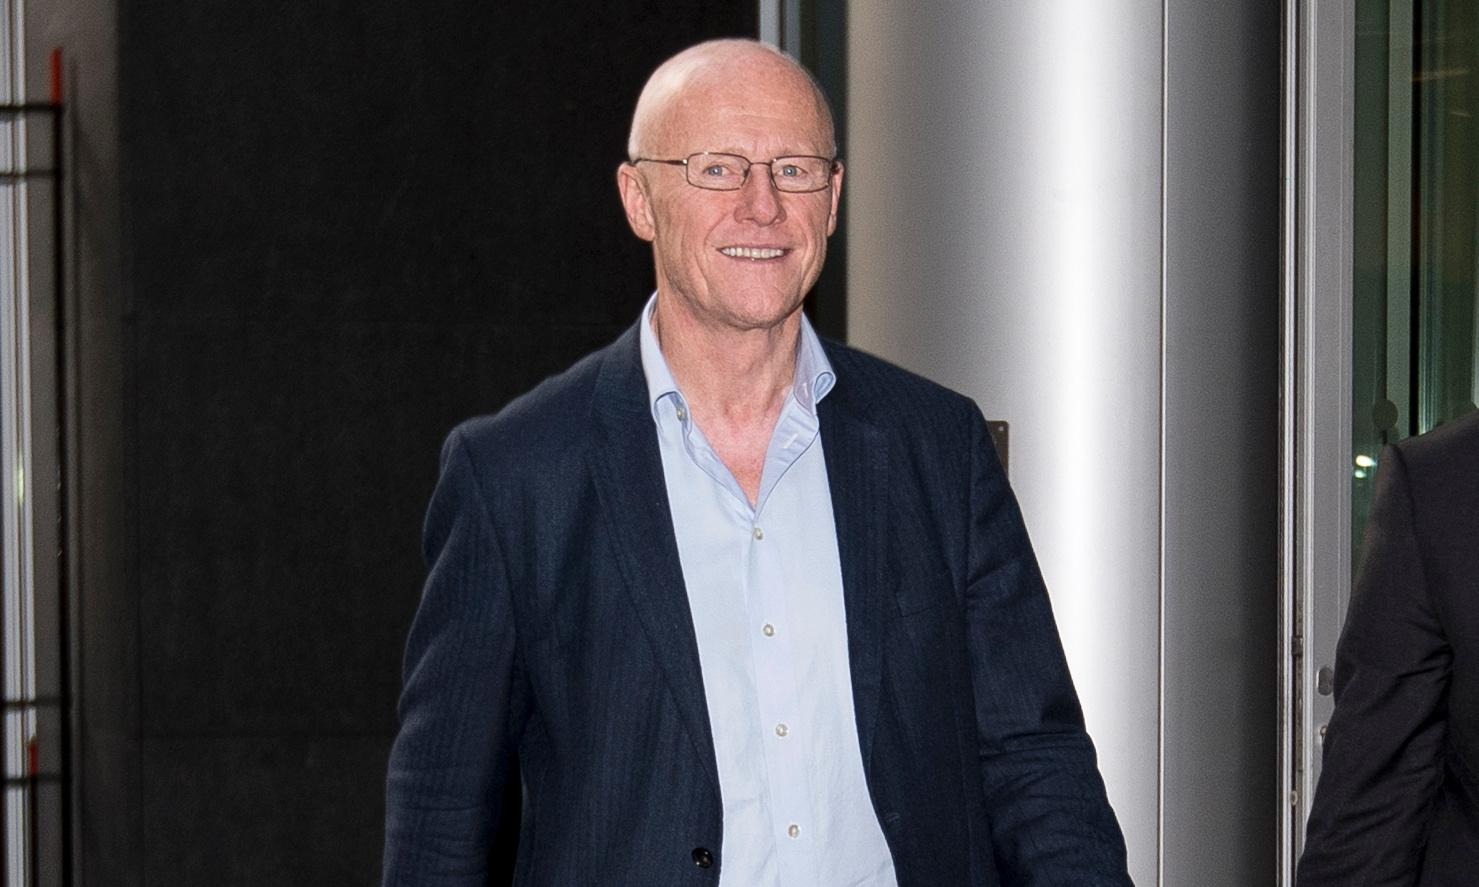 Phones4u founder vows to leave UK to avoid higher taxes